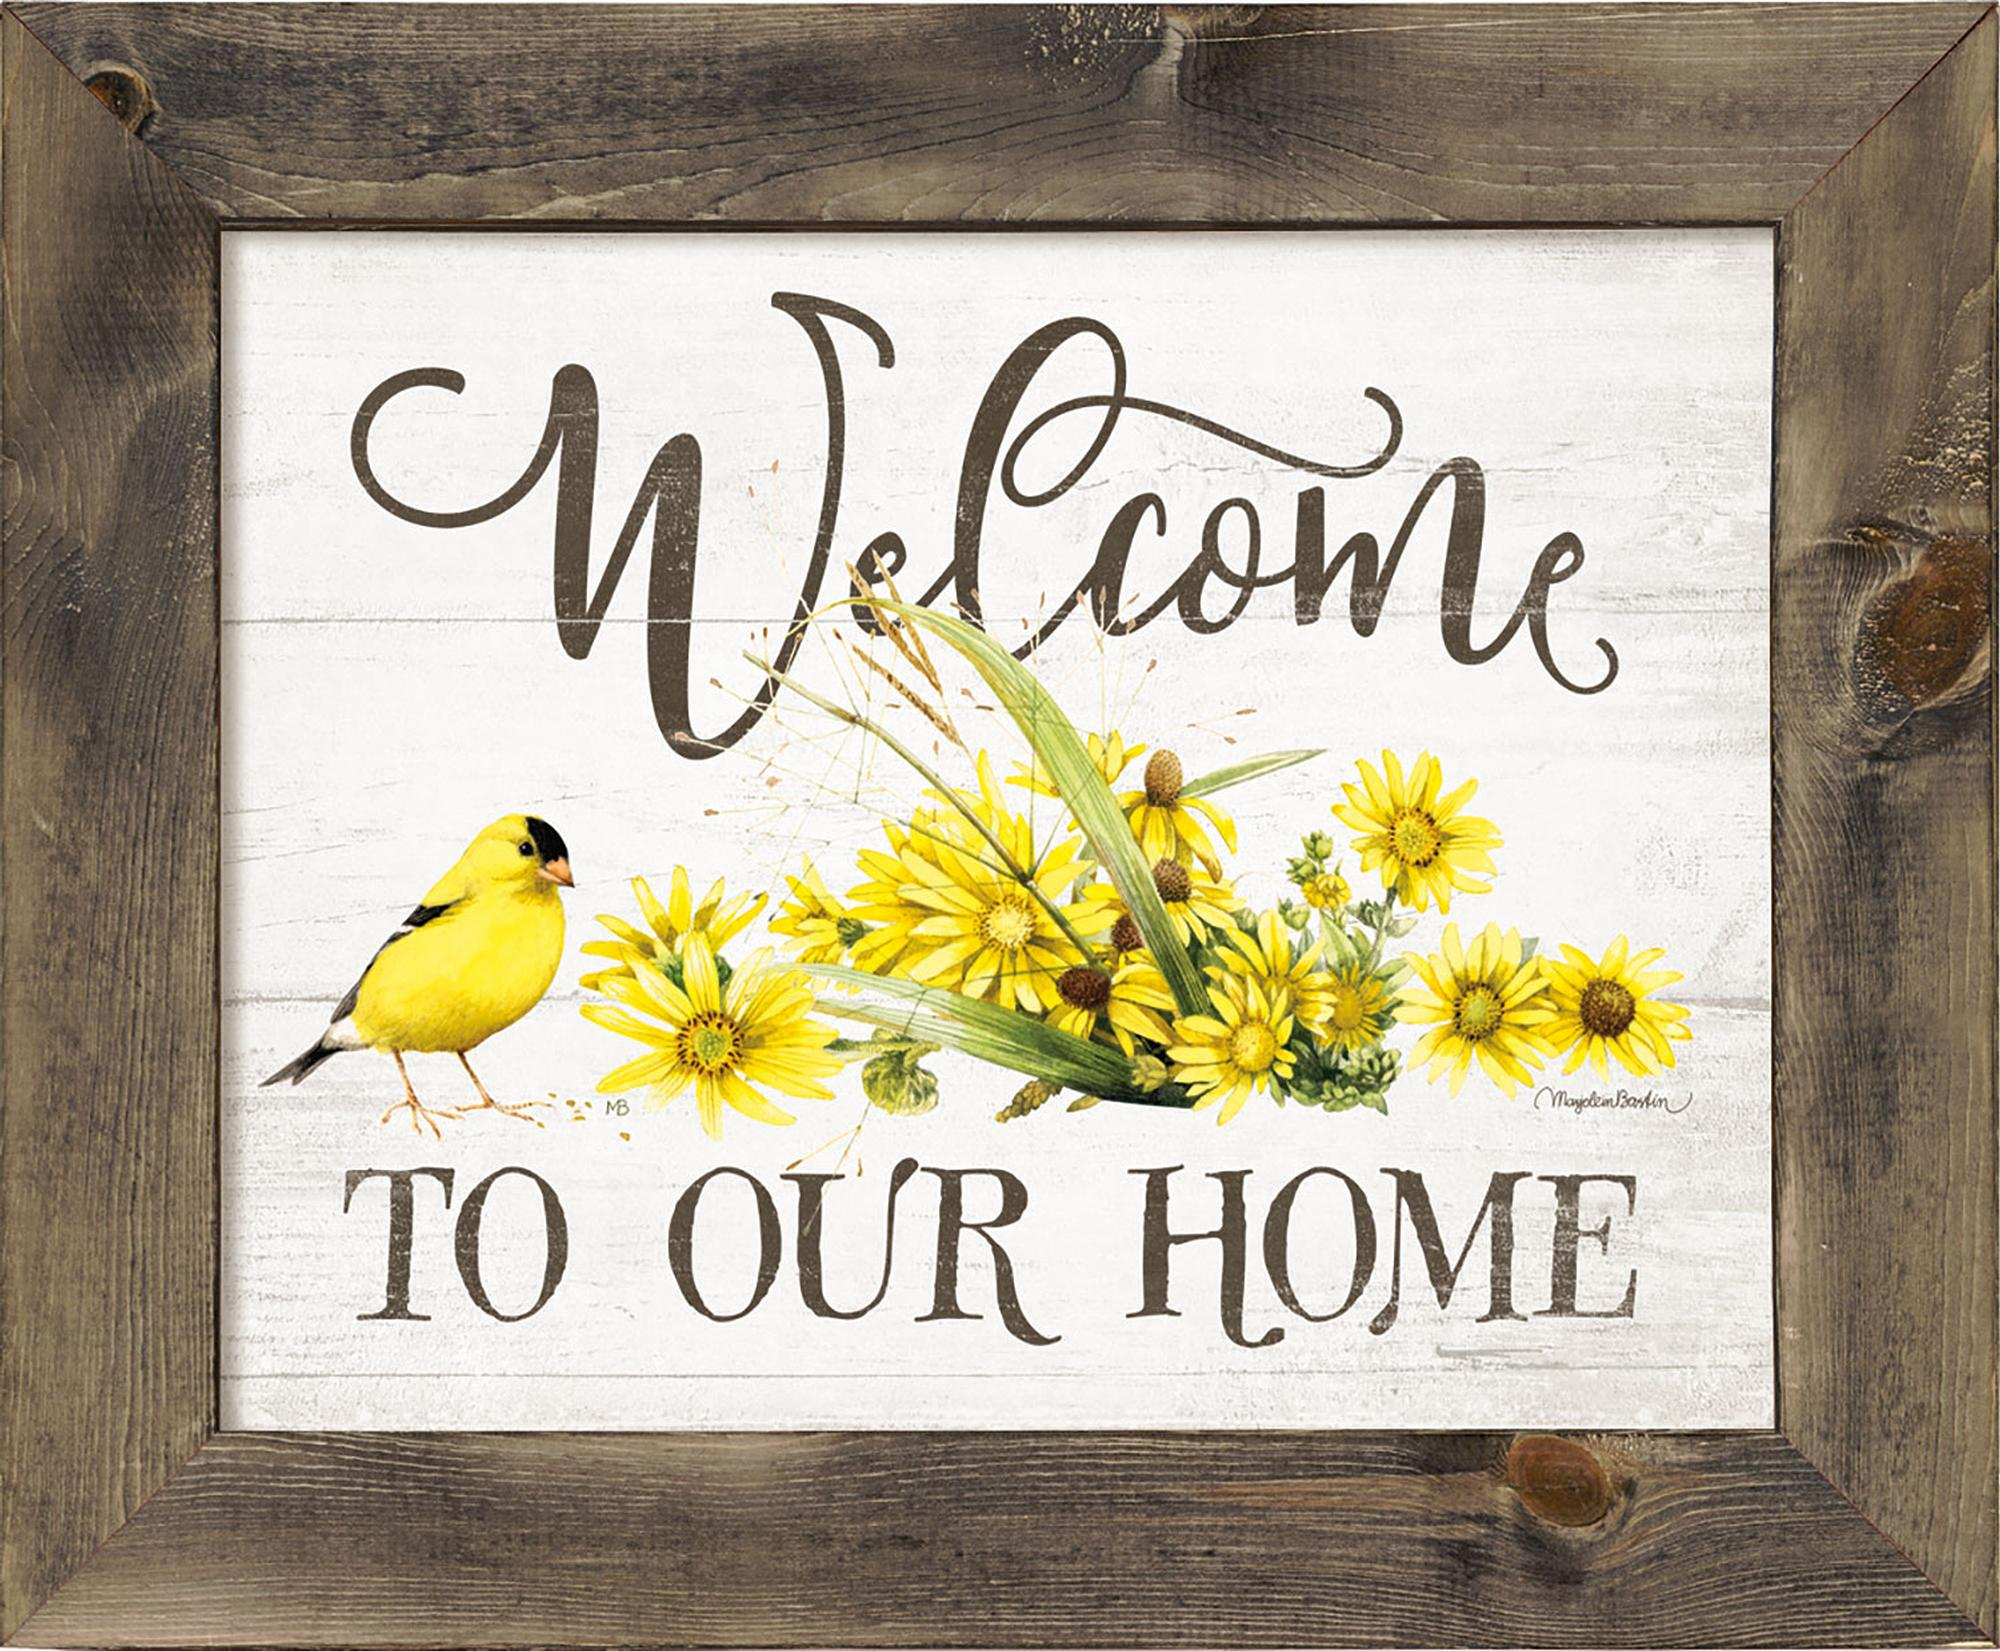 Welcome to our Home—Goldfinch.